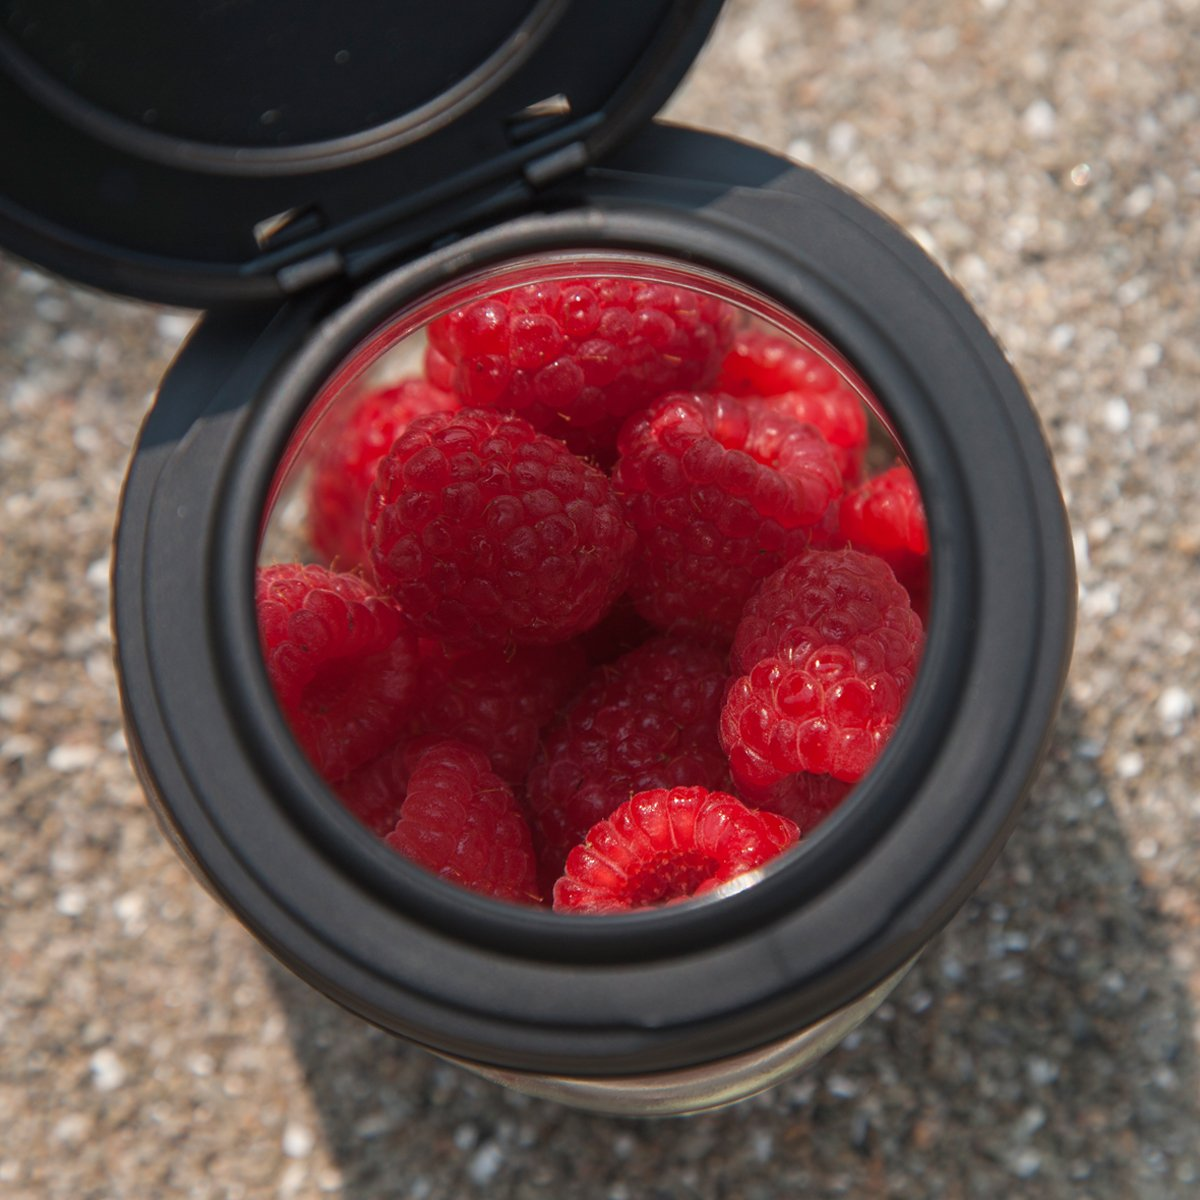 reCAP Mason Jars Lid FLIP Cap, Regular Mouth, Black - 10 Pack - BPA-Free, American Made Ball Mason Jar Lids for Preparing, Serving and Storage, Spill Proof and Made with Safe, No-Break Materials by reCAP (Image #4)